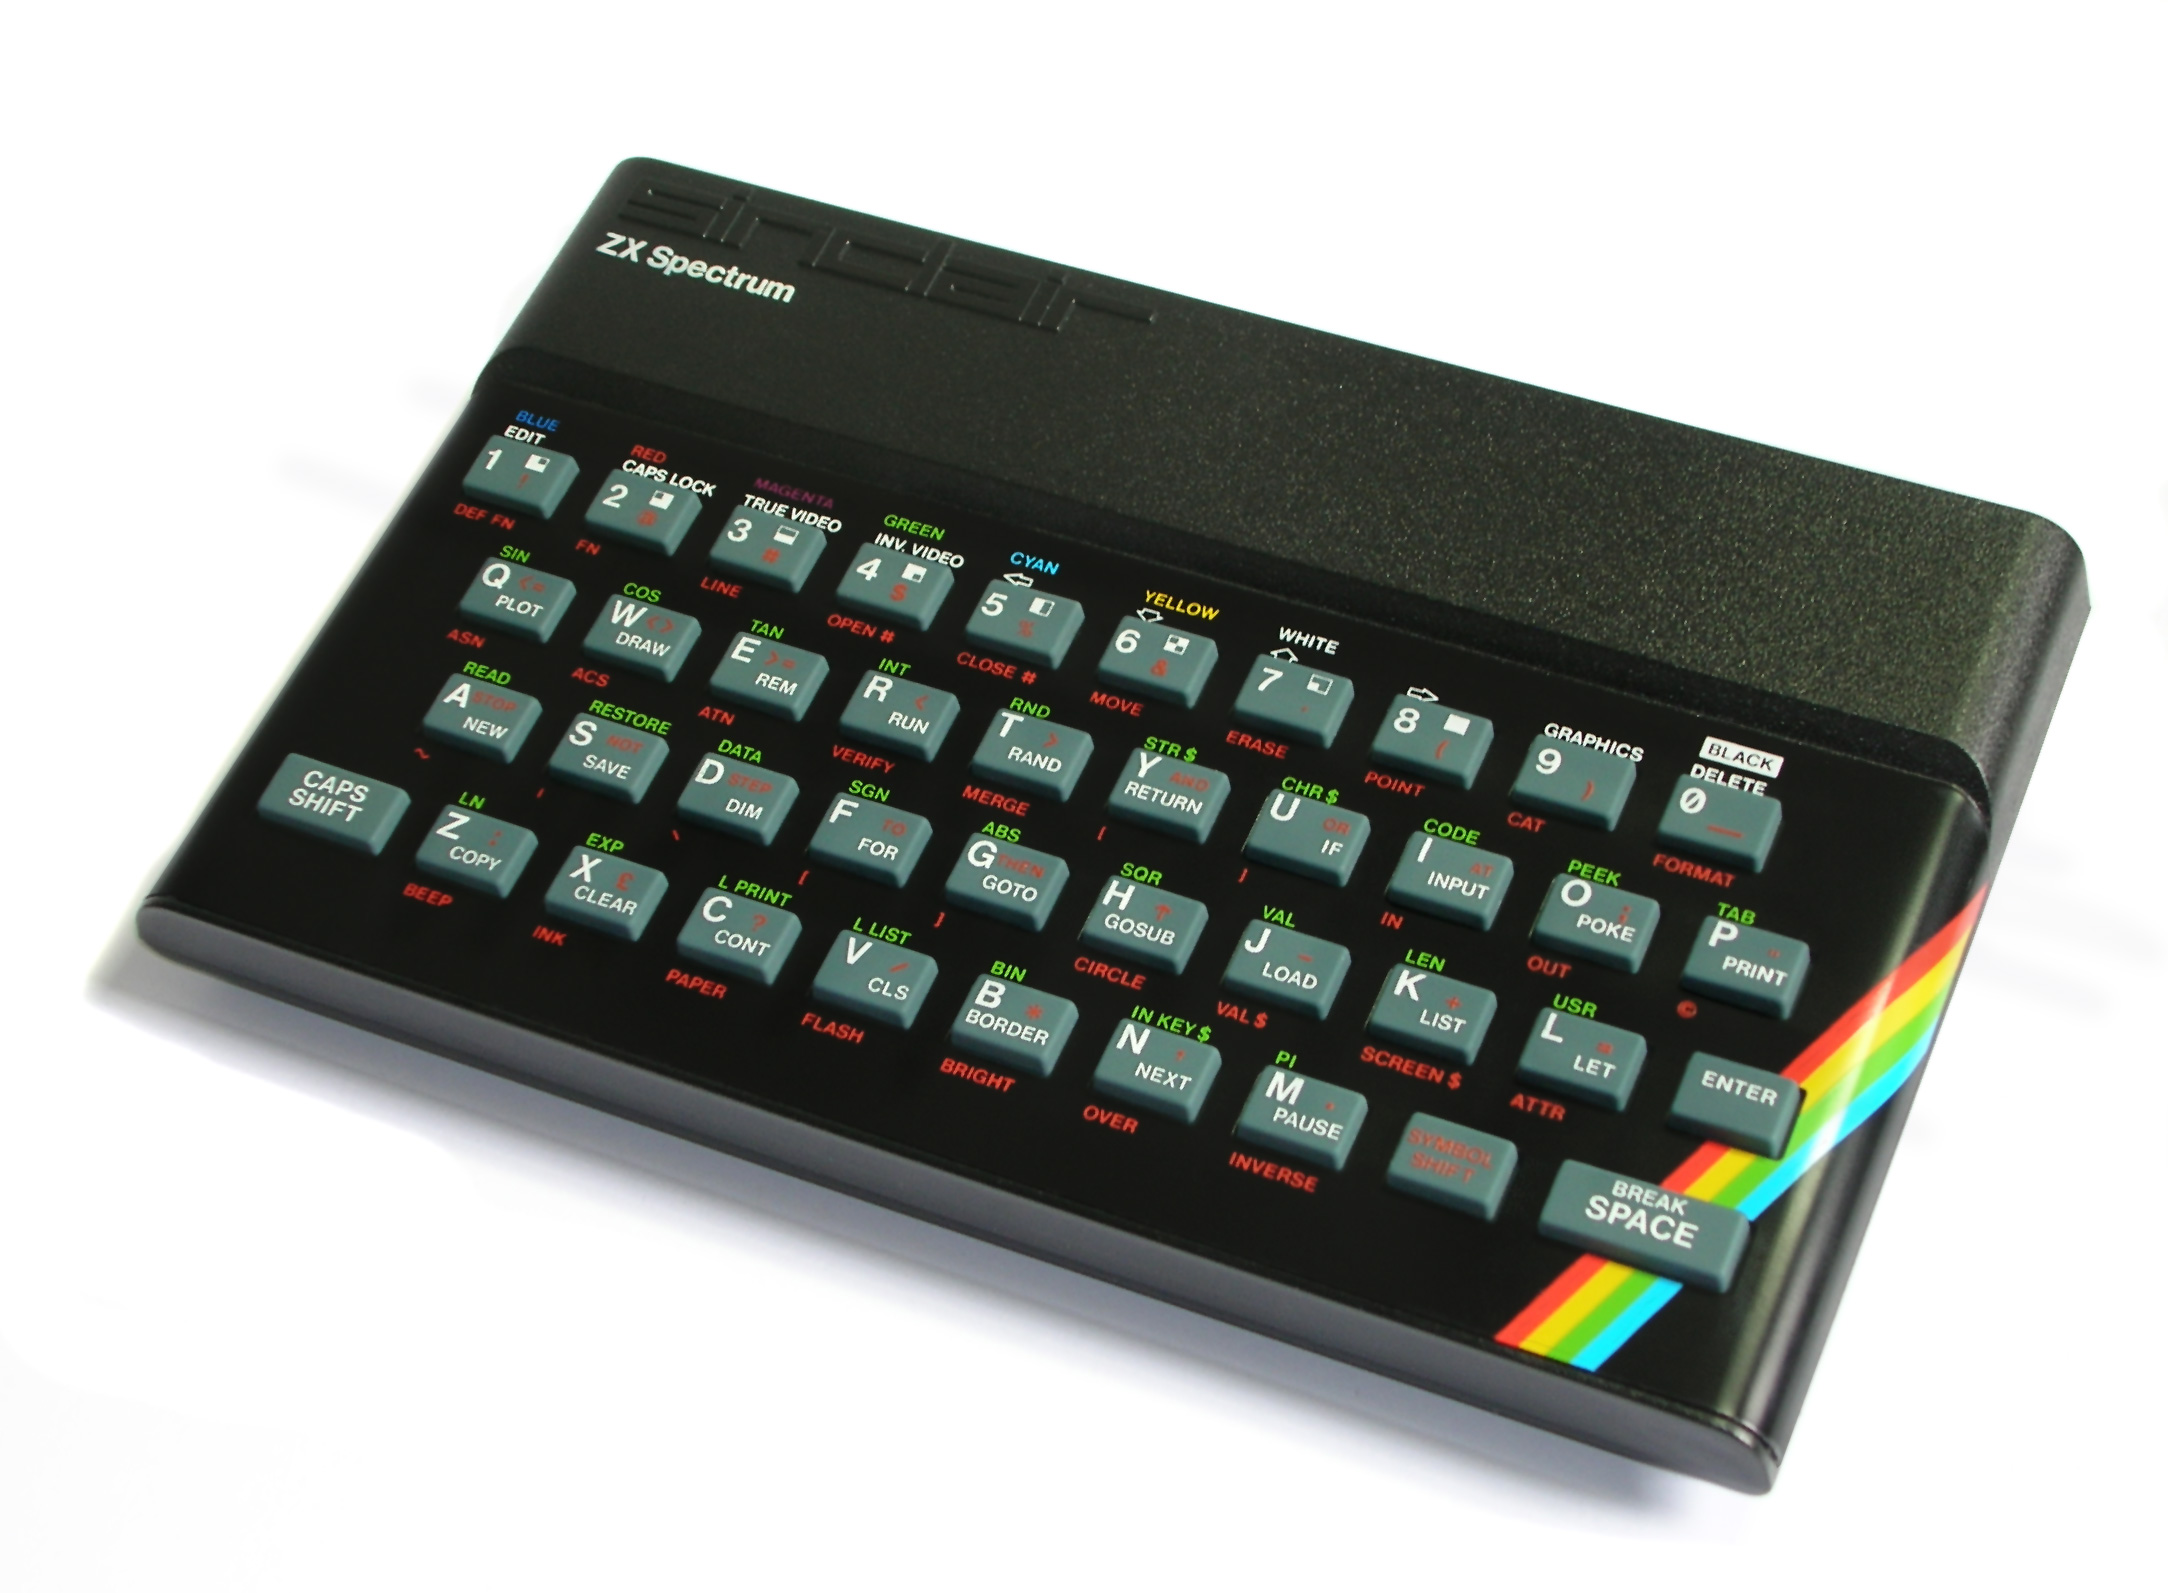 https://upload.wikimedia.org/wikipedia/commons/3/33/ZXSpectrum48k.jpg